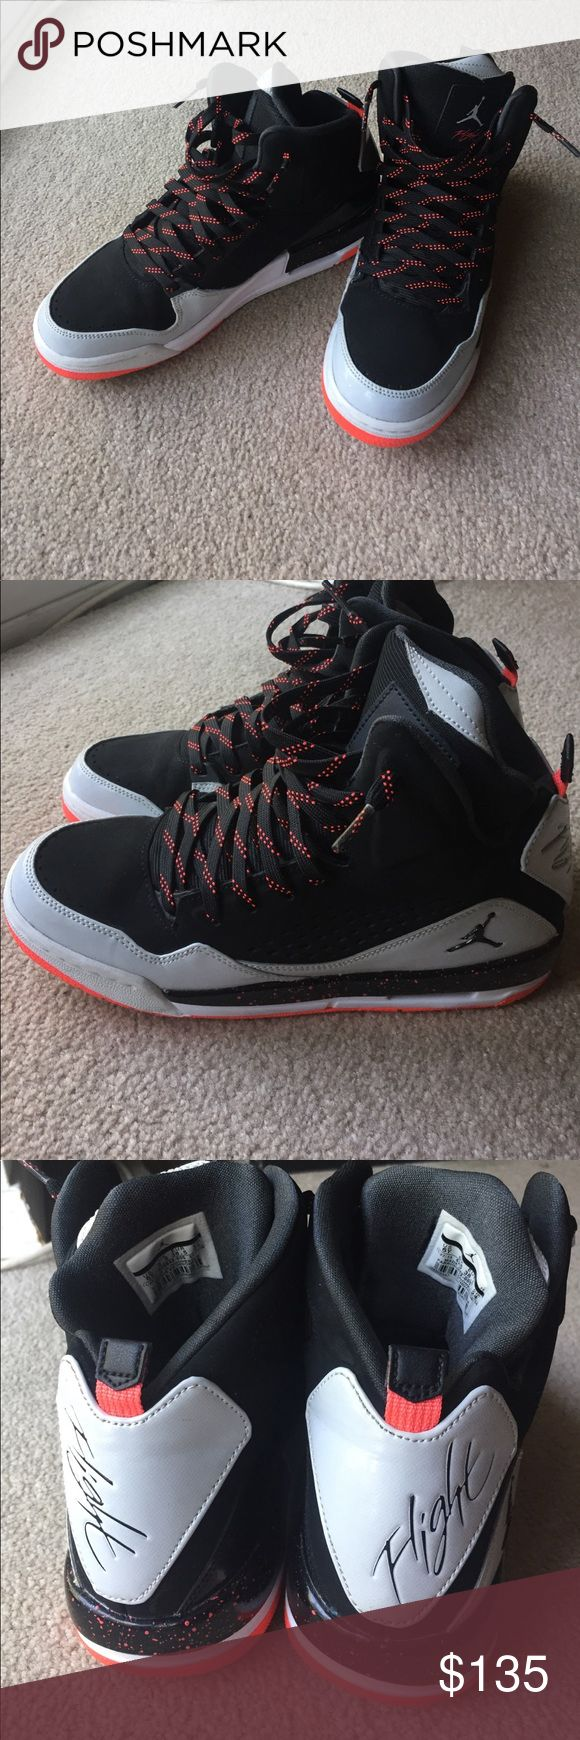 🔥VERY RARE🔥 Jordan's Retro Flights Very rare high top Jordans. Tag says 6Y but I wear a women's 6.5 US and they fit perfectly. Bought them a few years back and have only worn them once or twice. There's a tiny almost unnoticeable smudge on the right shoe (picture shown) besides that they are prestine and in almost perfect condition. Jordan Shoes Sneakers